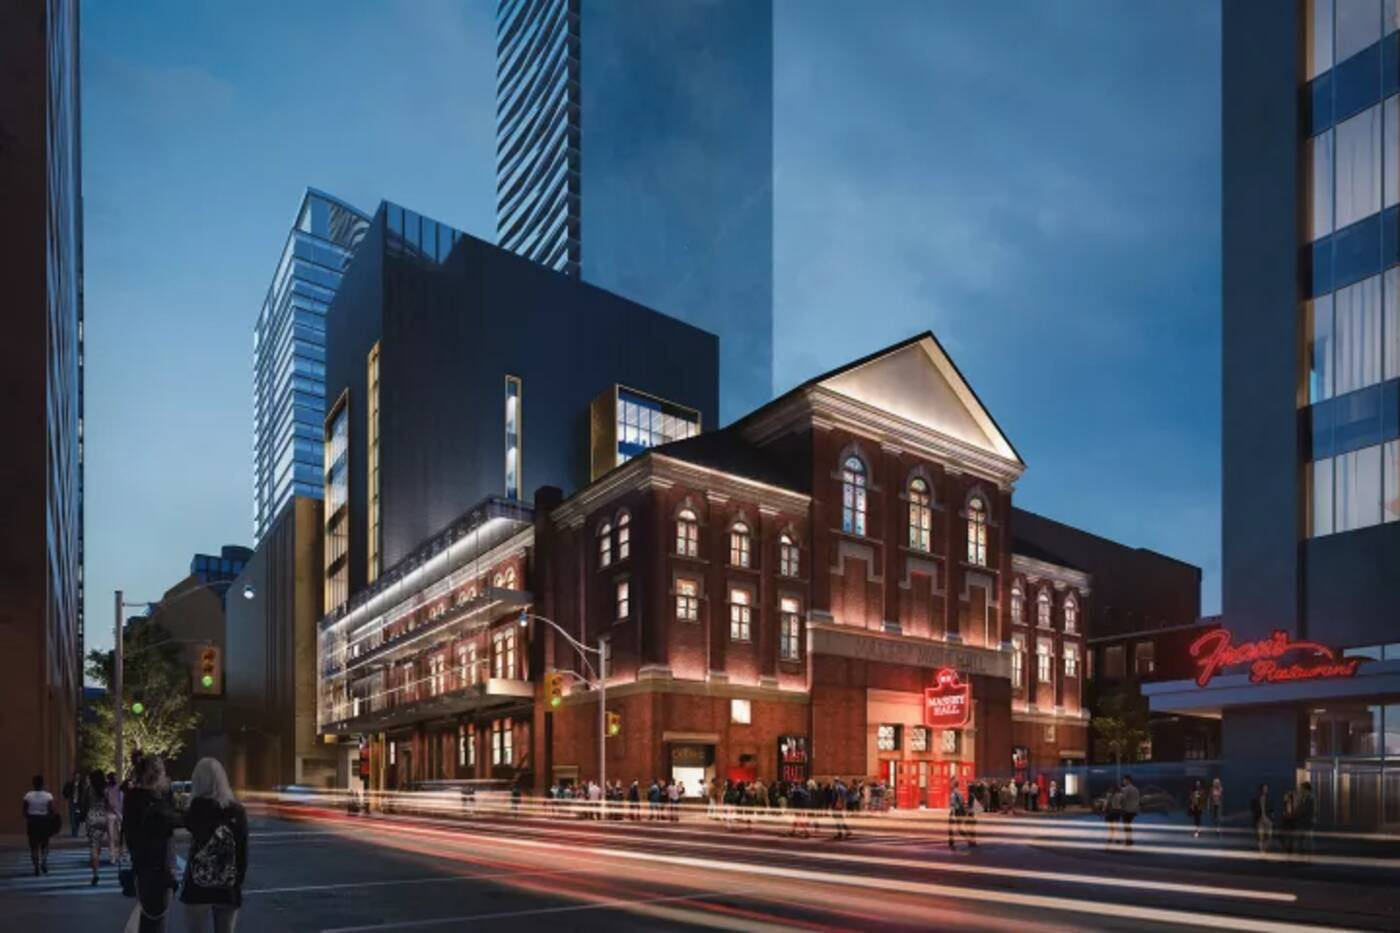 Massey hall renovations